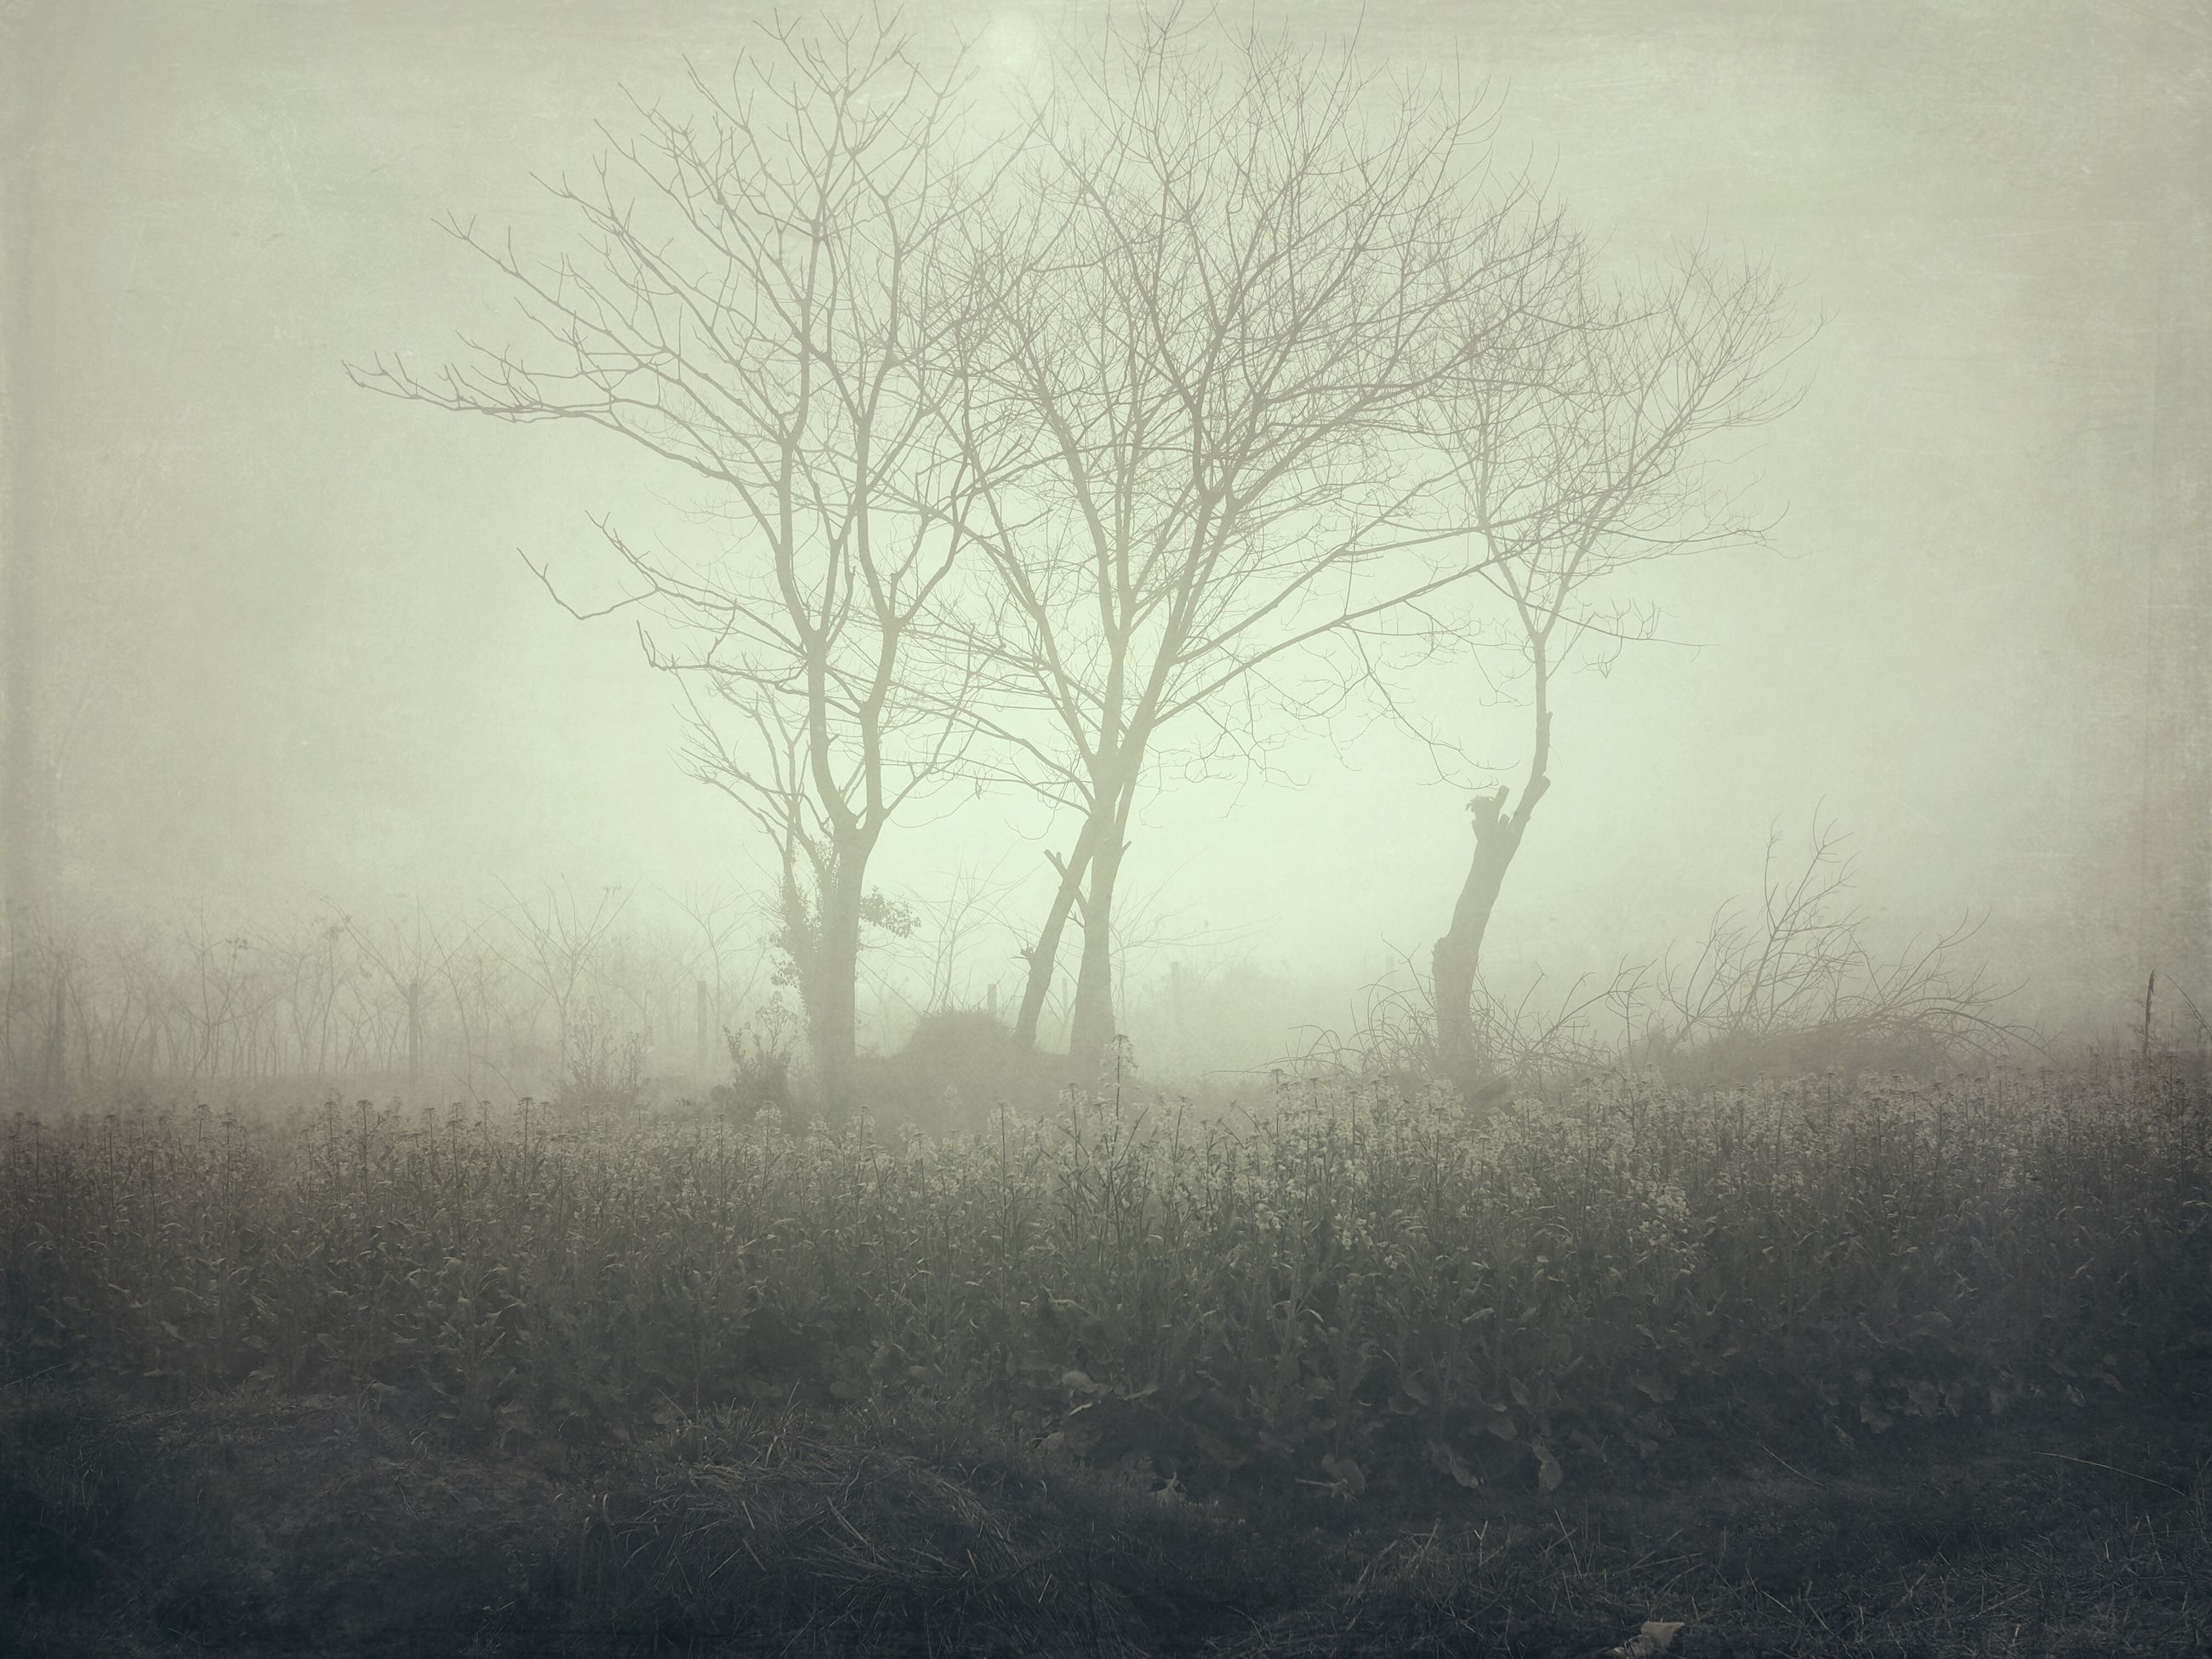 nature, tree, no people, outdoors, day, bare tree, fog, beauty in nature, hazy